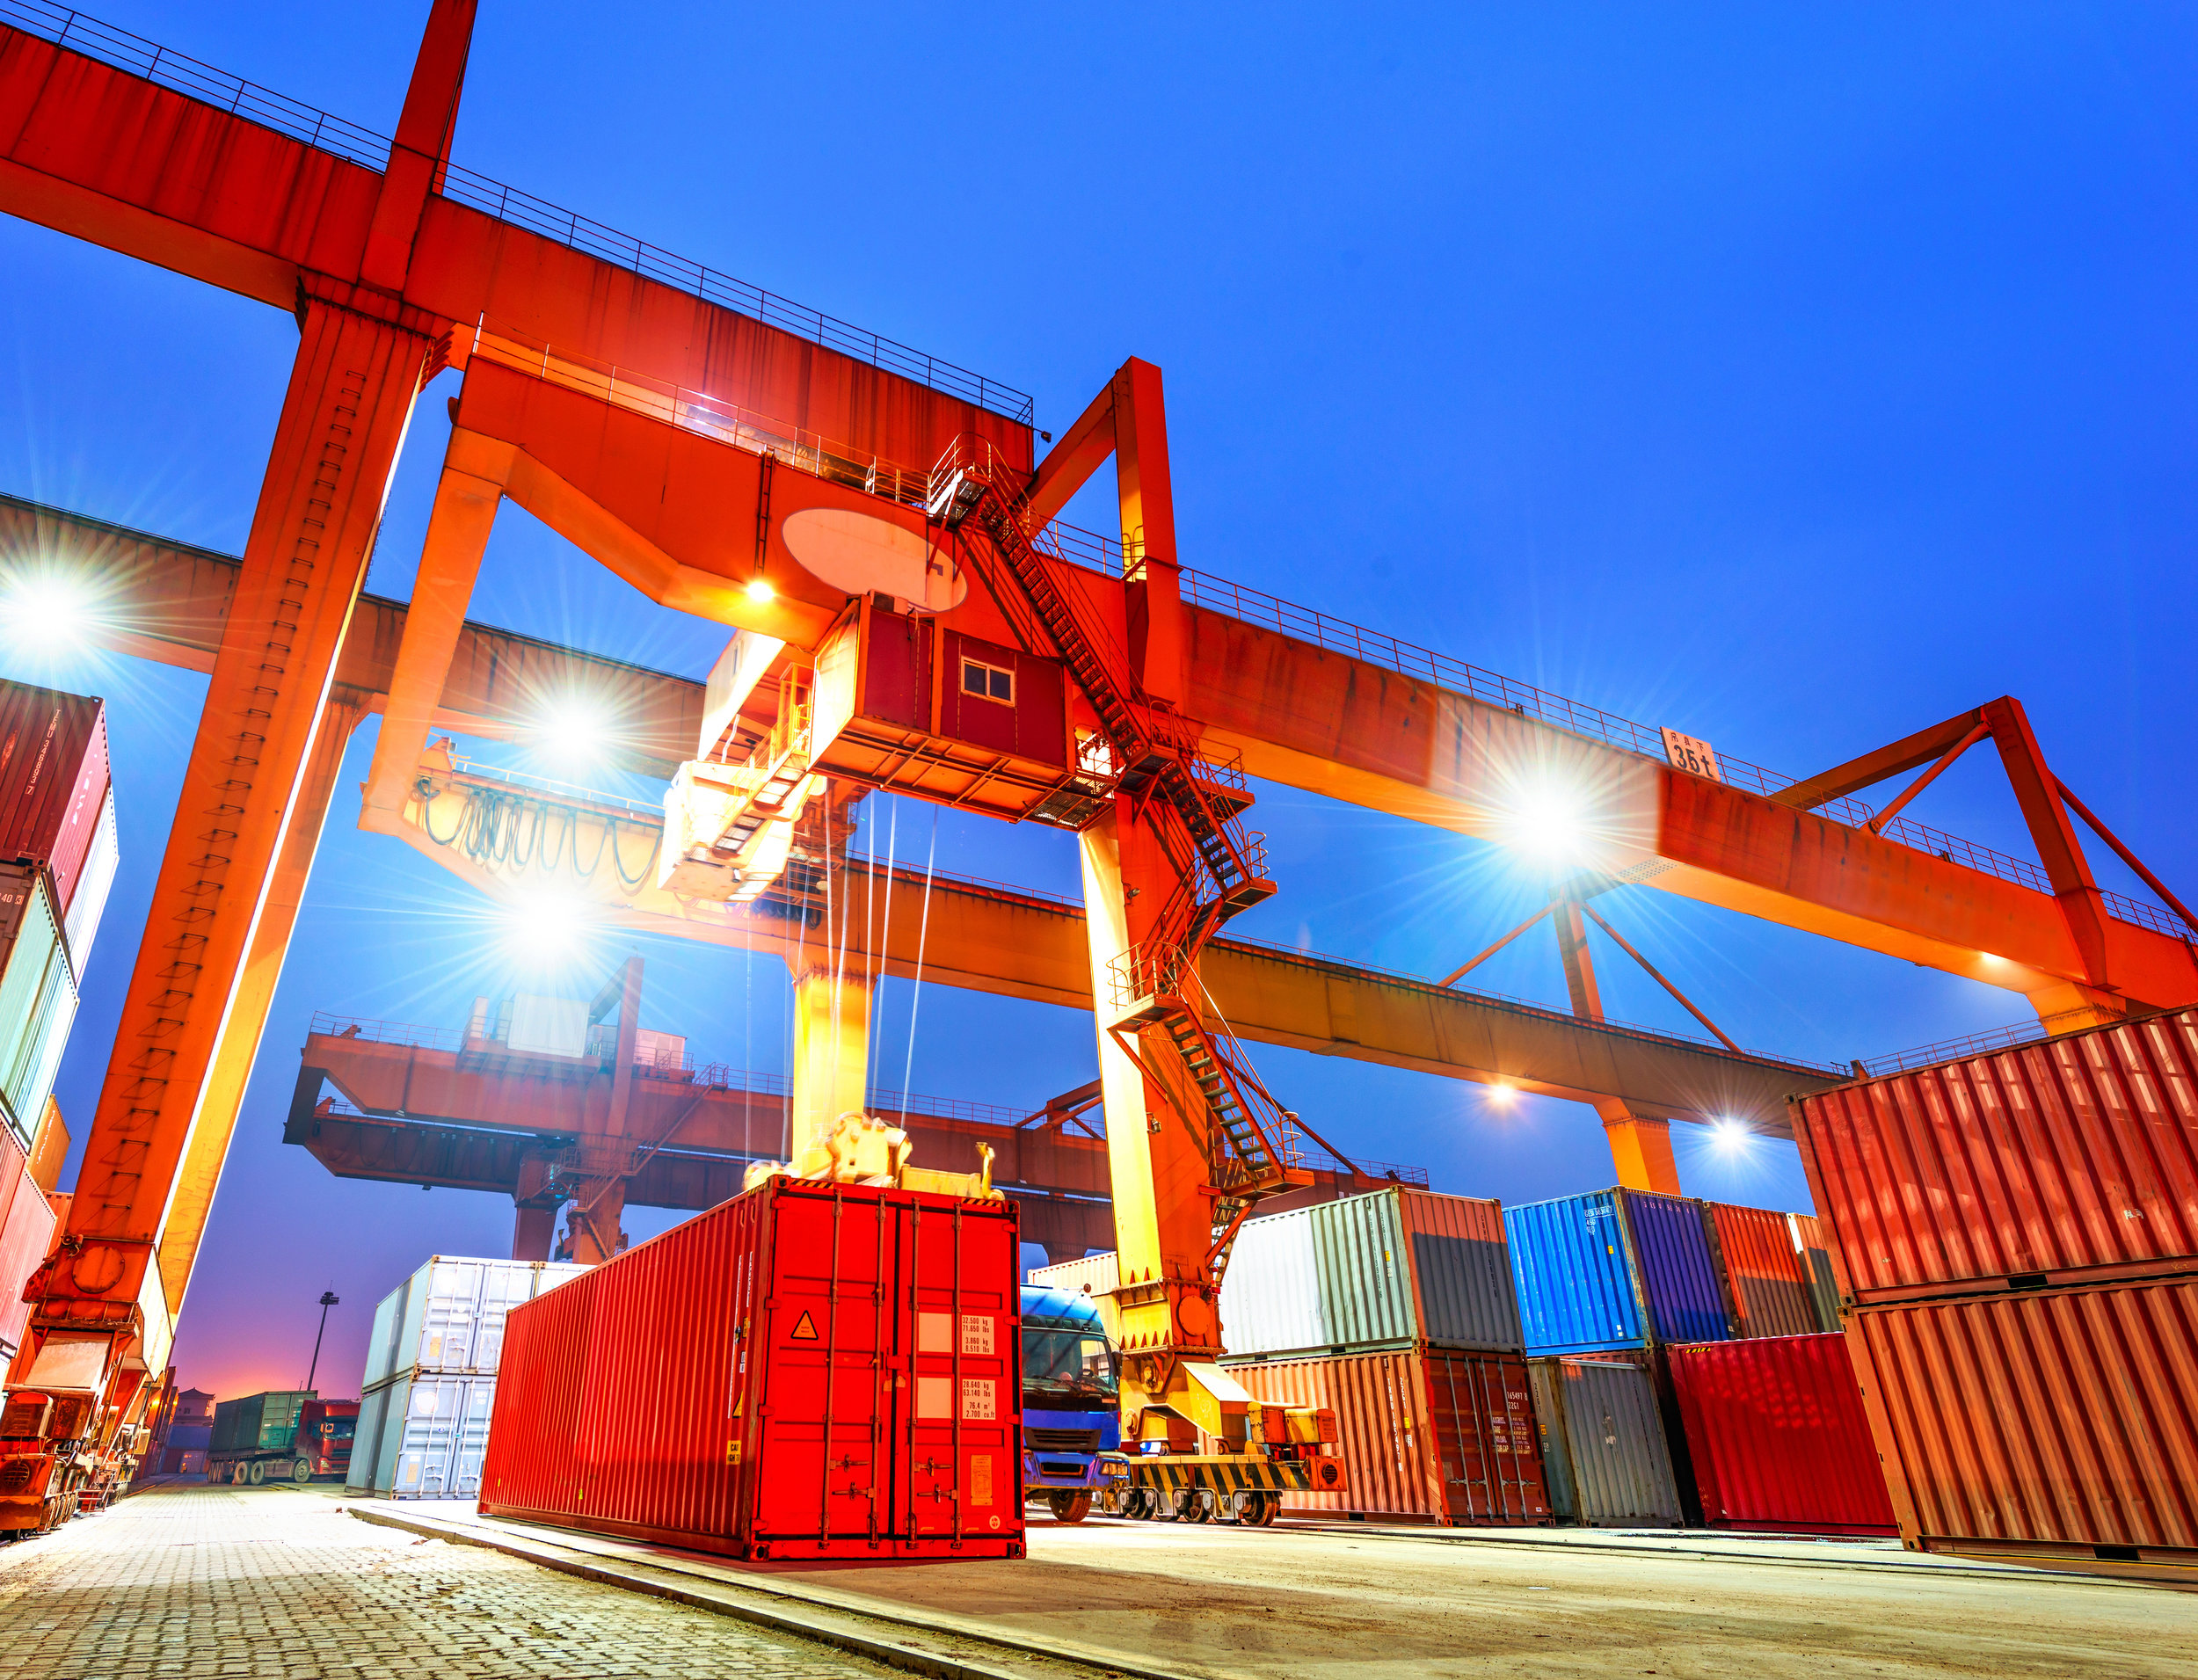 LOADING CONTAINERS iStock-484016631.jpg